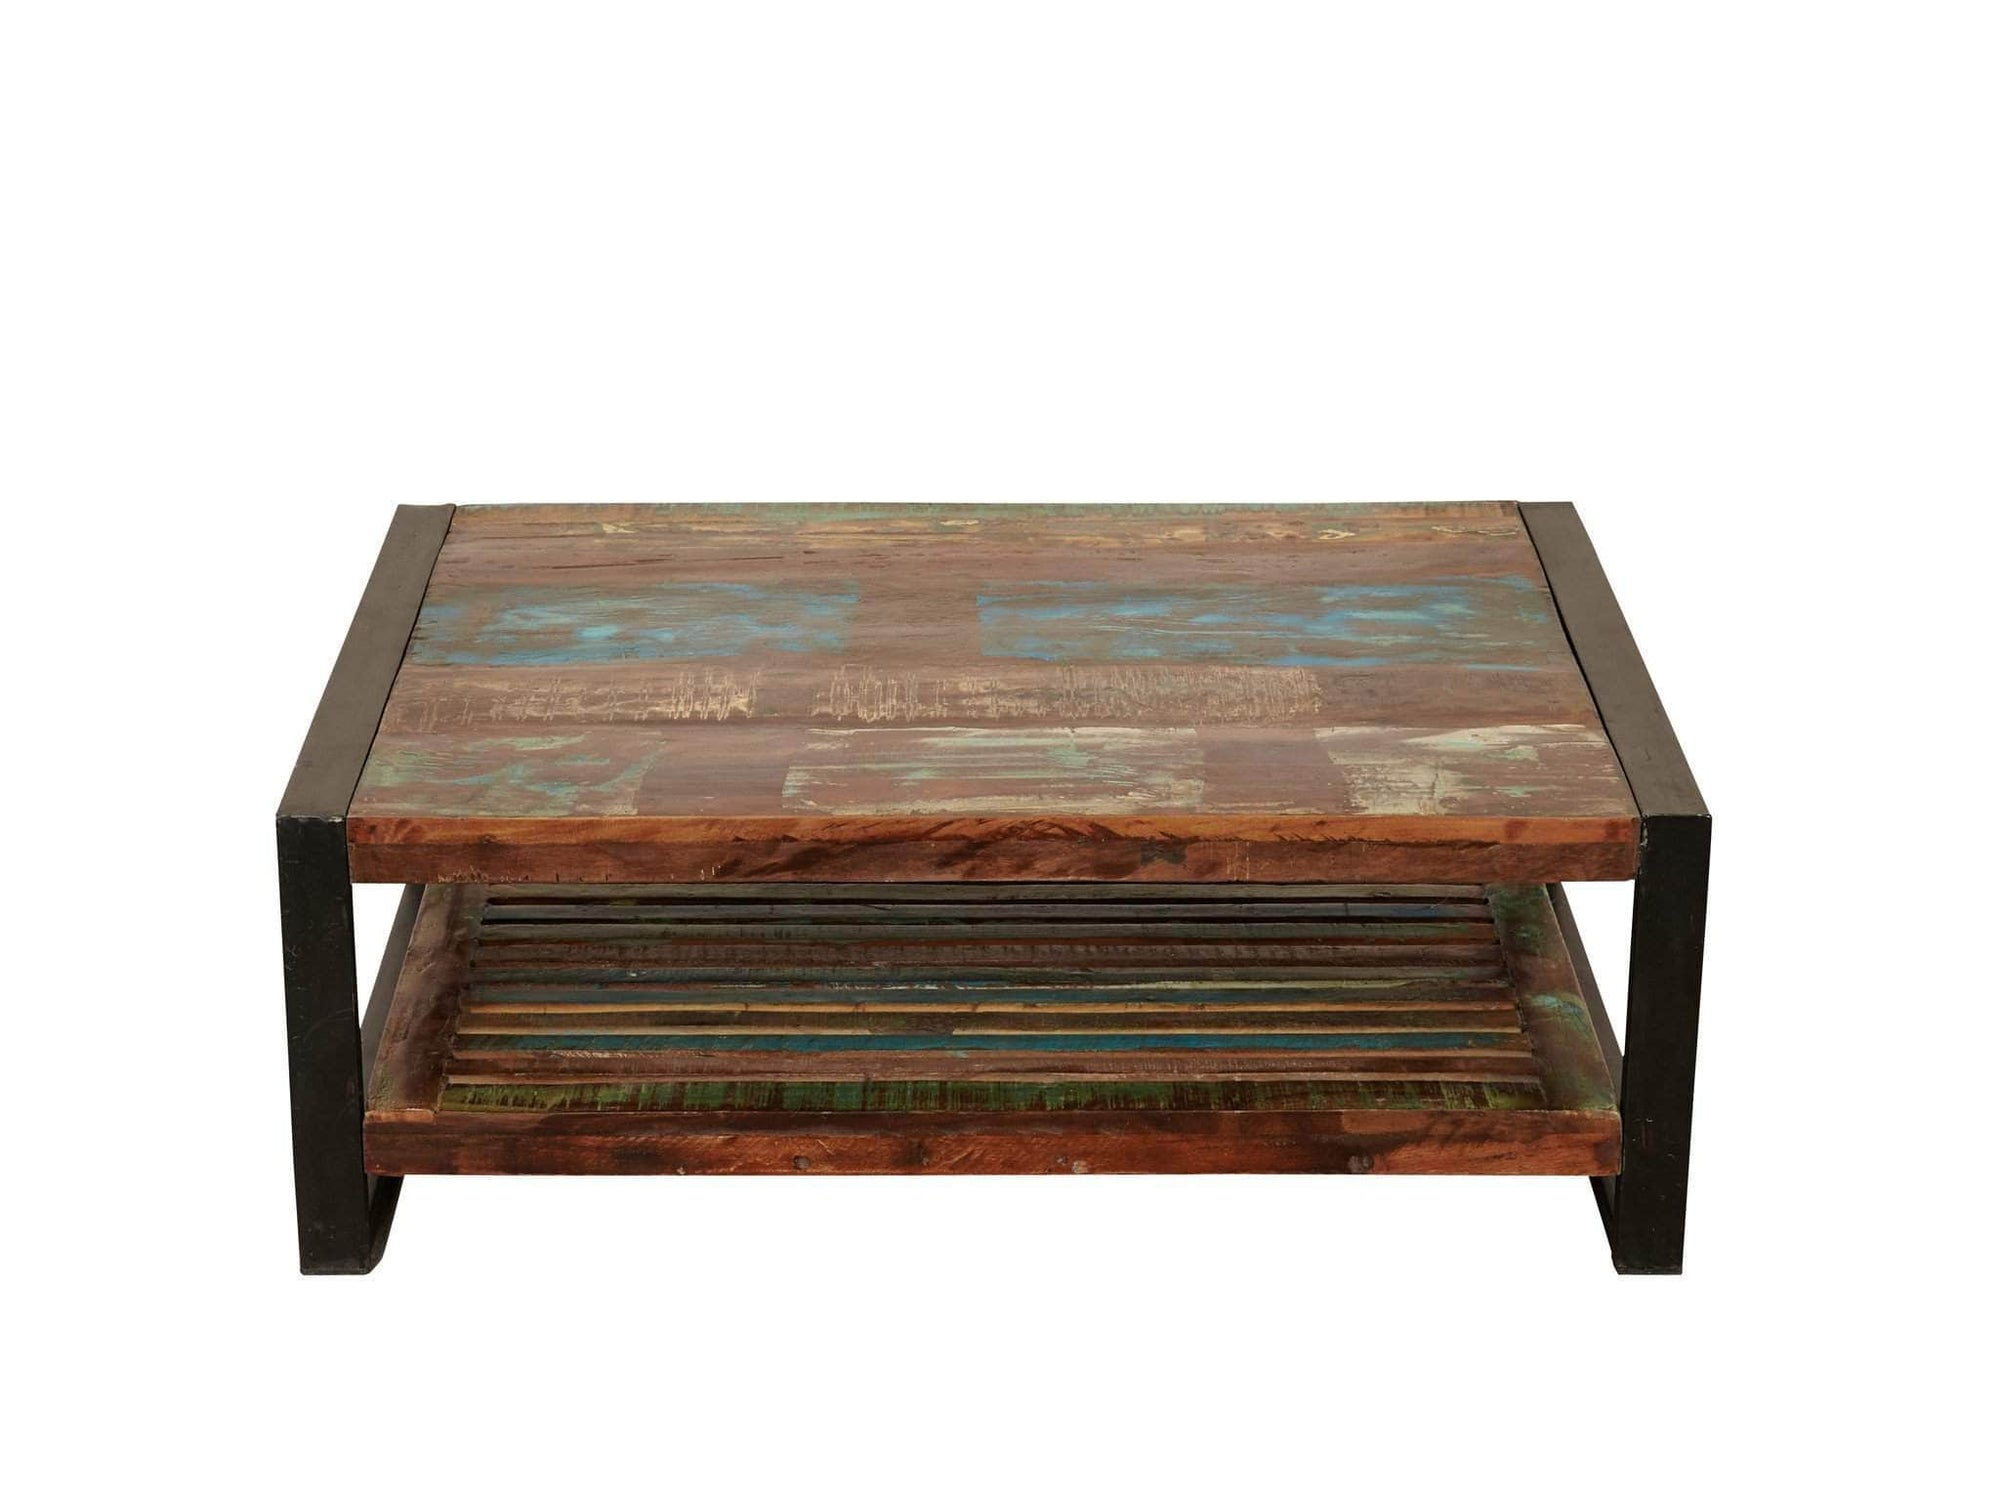 Rectangular reclaimed wood coffee table with sturdy under shelf